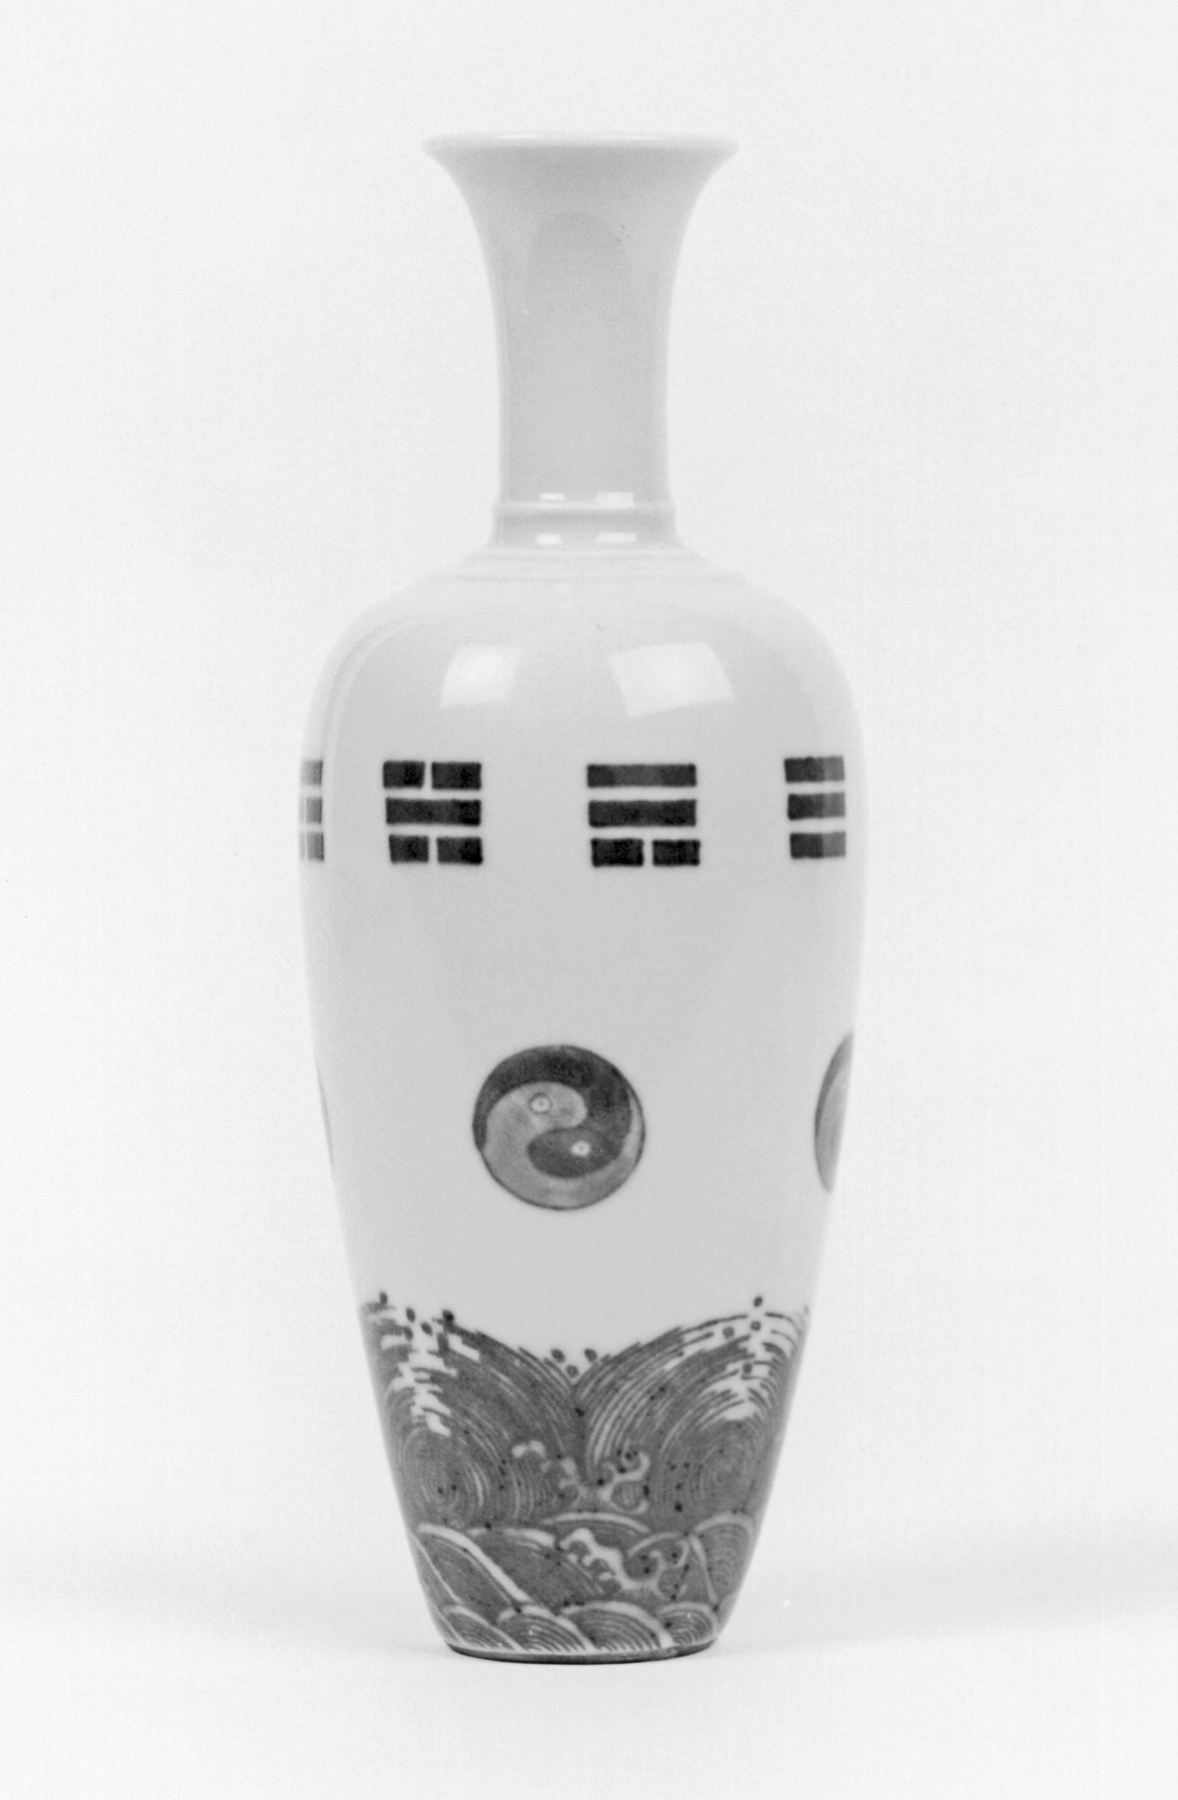 A picture of a vase with a Taijitu (Yin-Yang) on it.